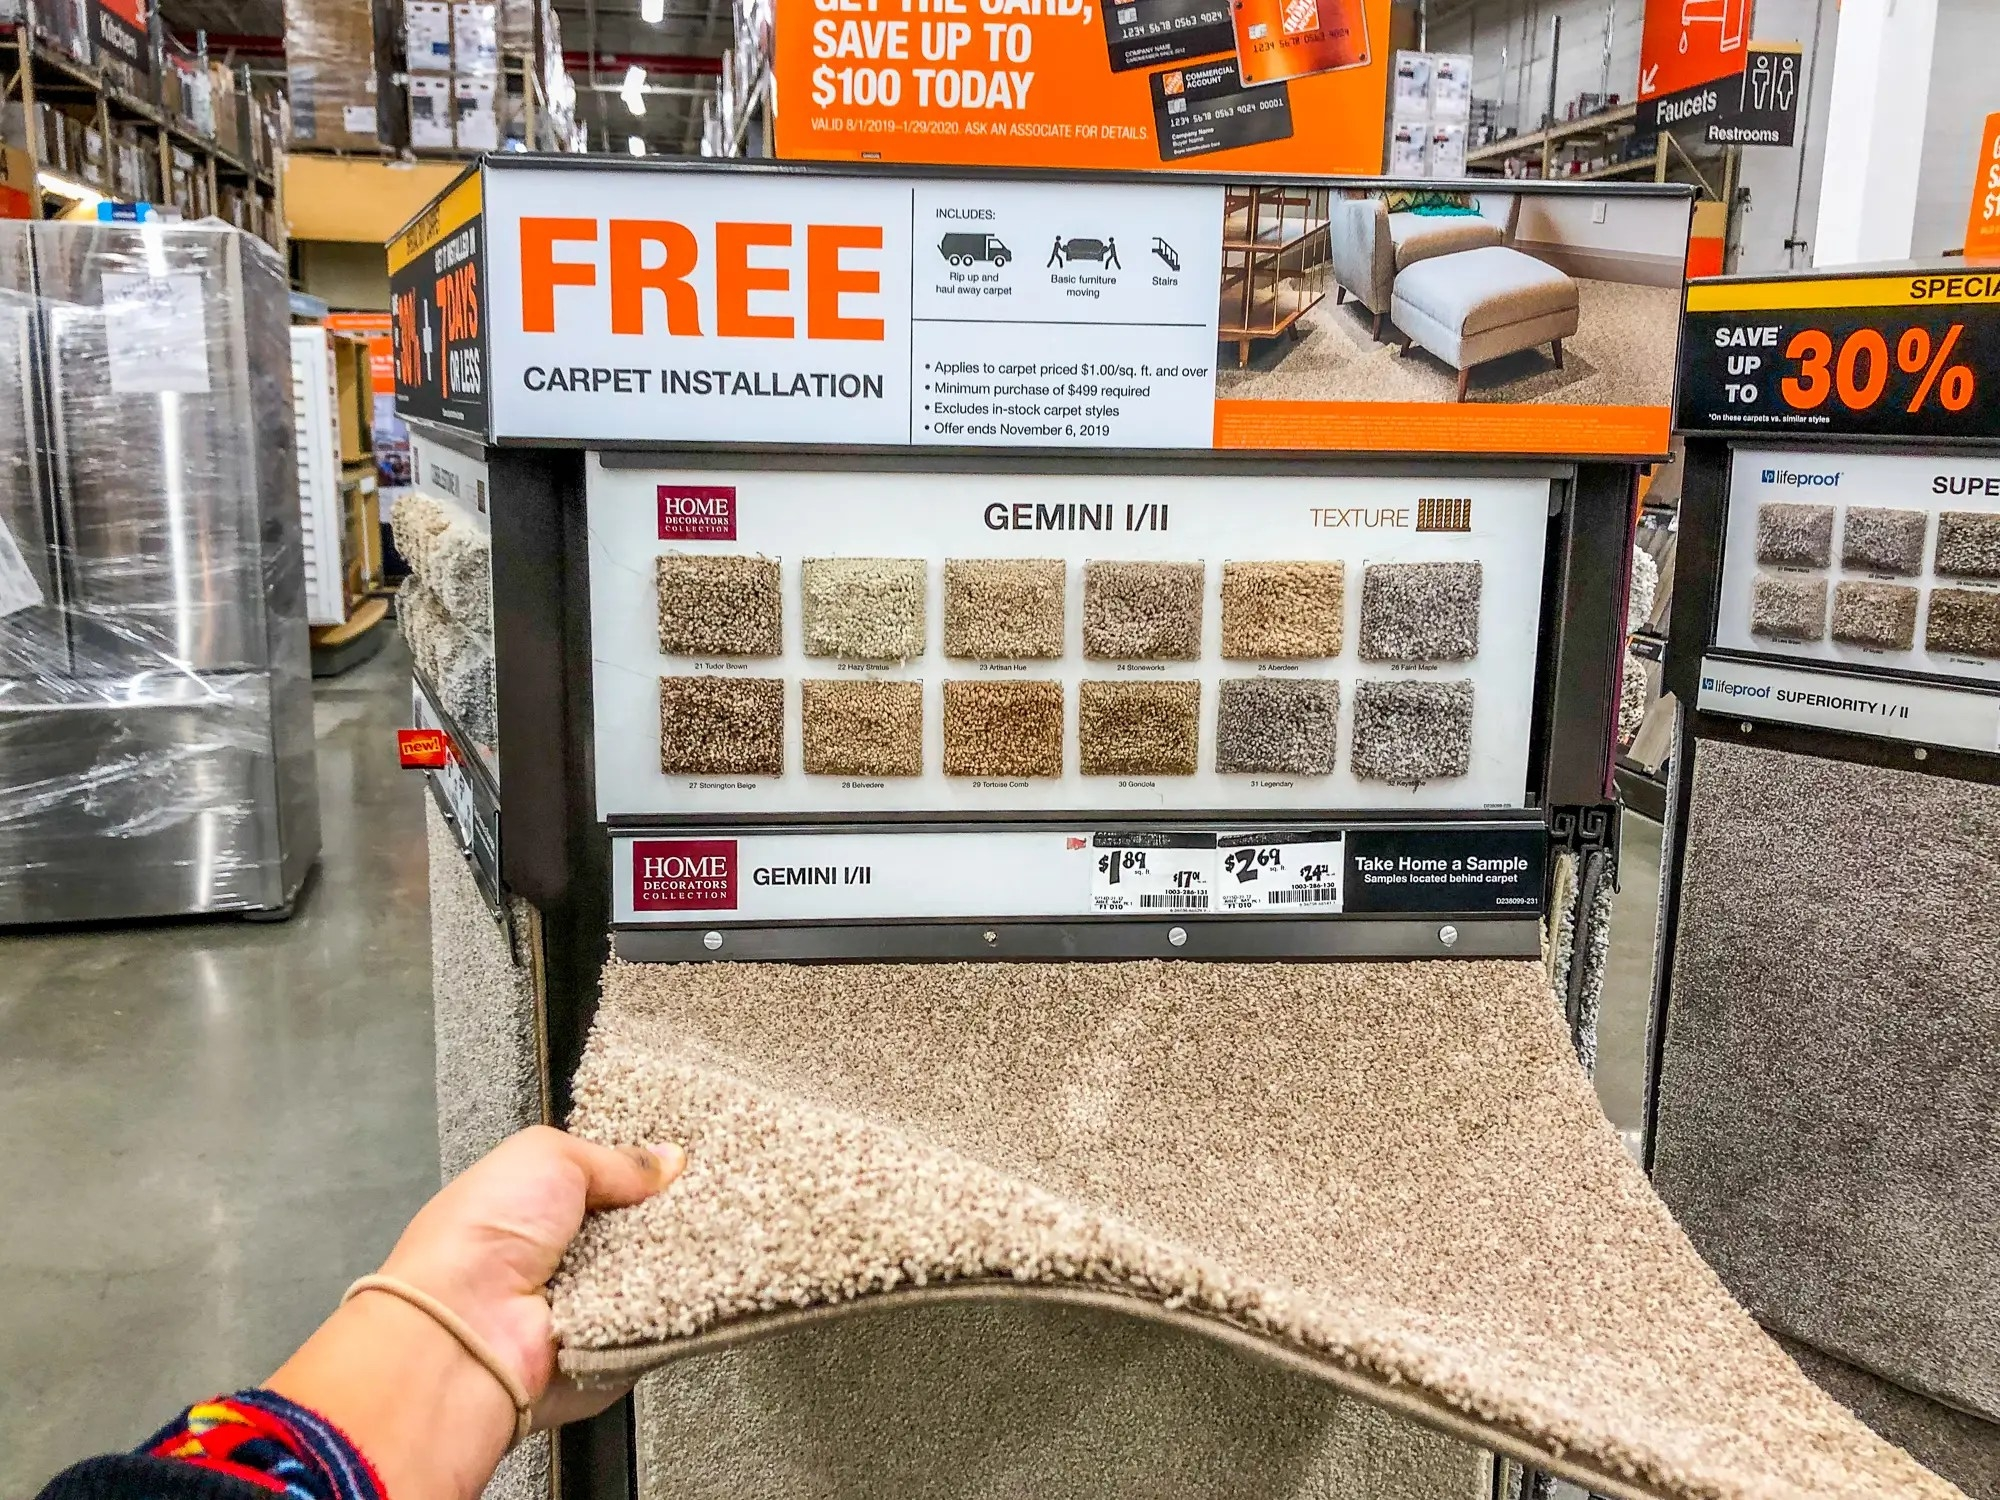 Photos Comparing Lowe S And Home Depot Show Why Lowe S Is Better | Cost To Carpet Stairs Home Depot | Wall Carpet | Stair Railing | Custom Rug | Carpet Cleaning | Carpet Rugs